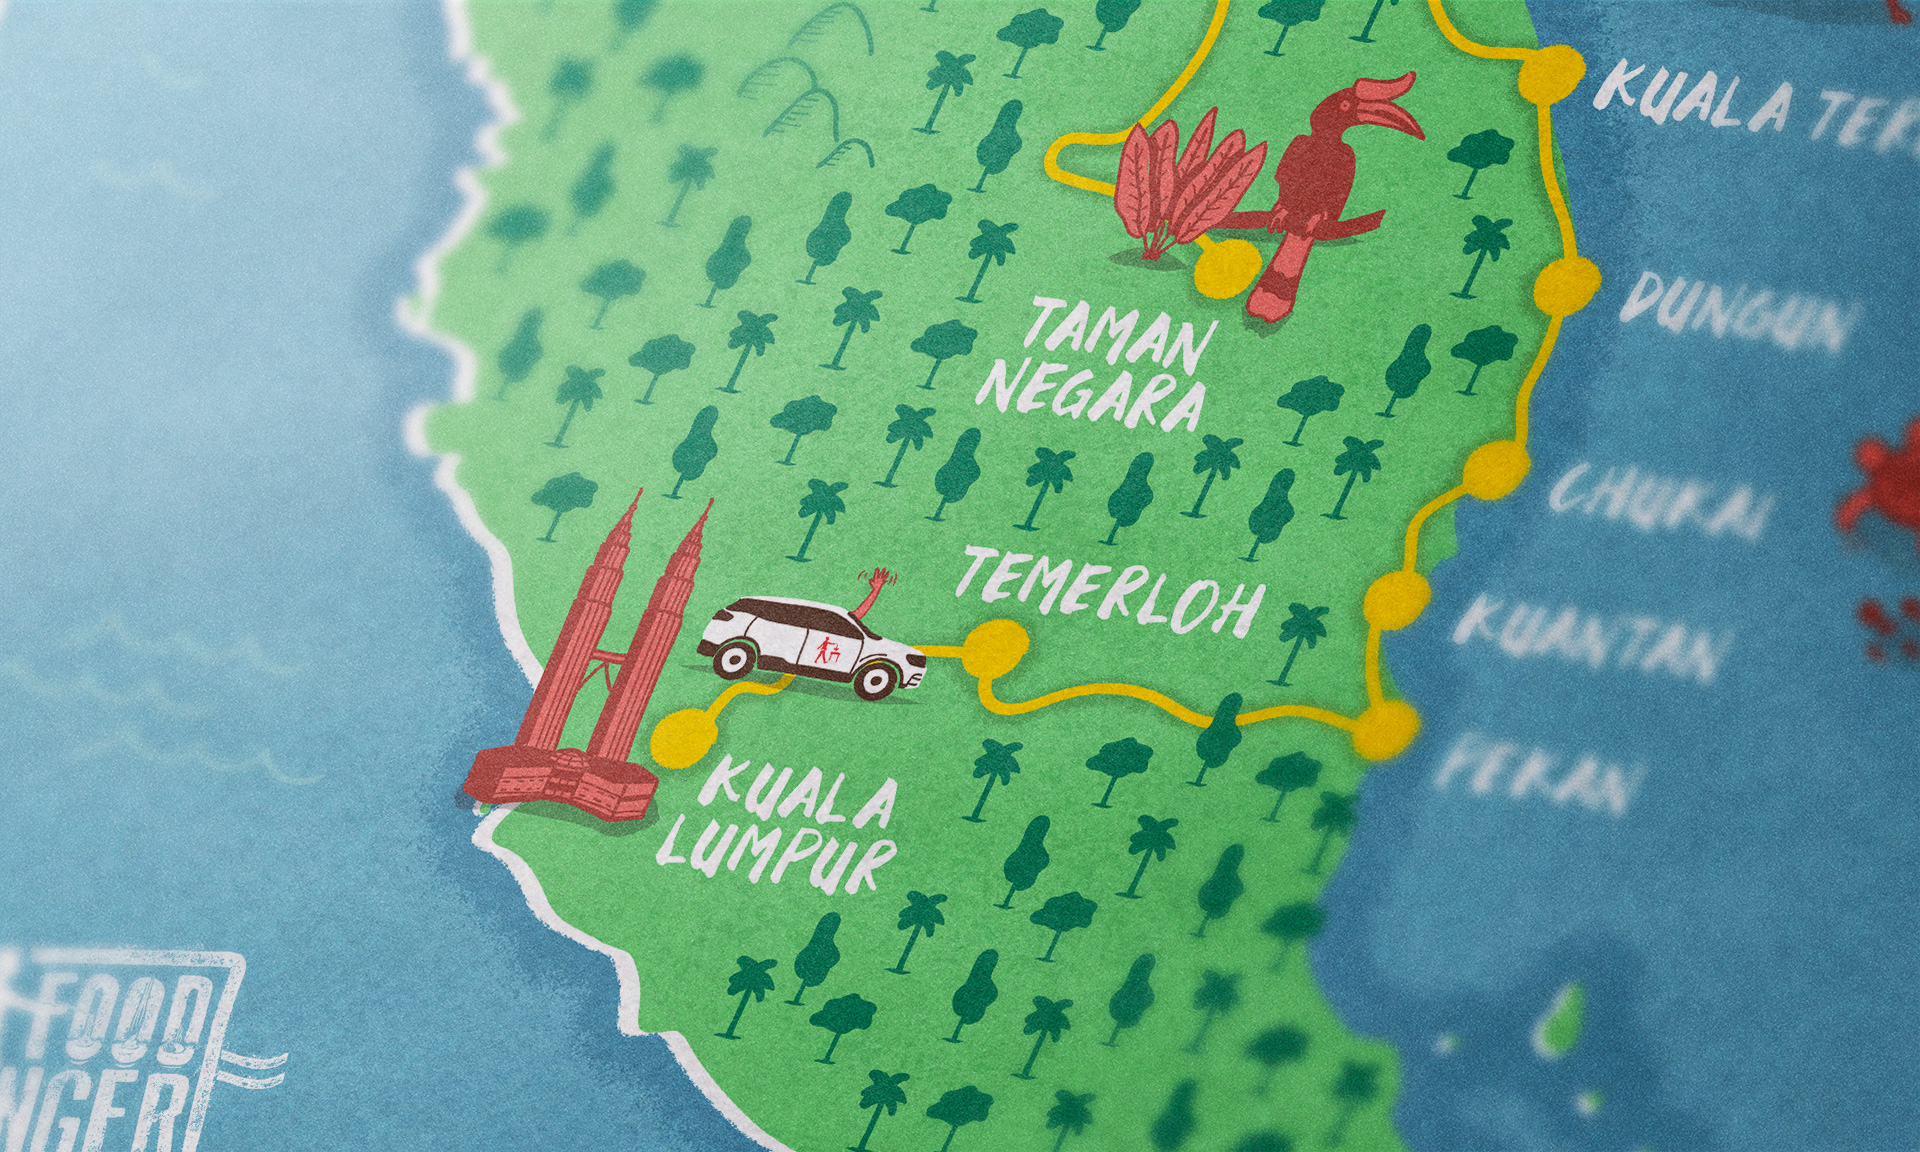 Malaysian food road trip map close-up